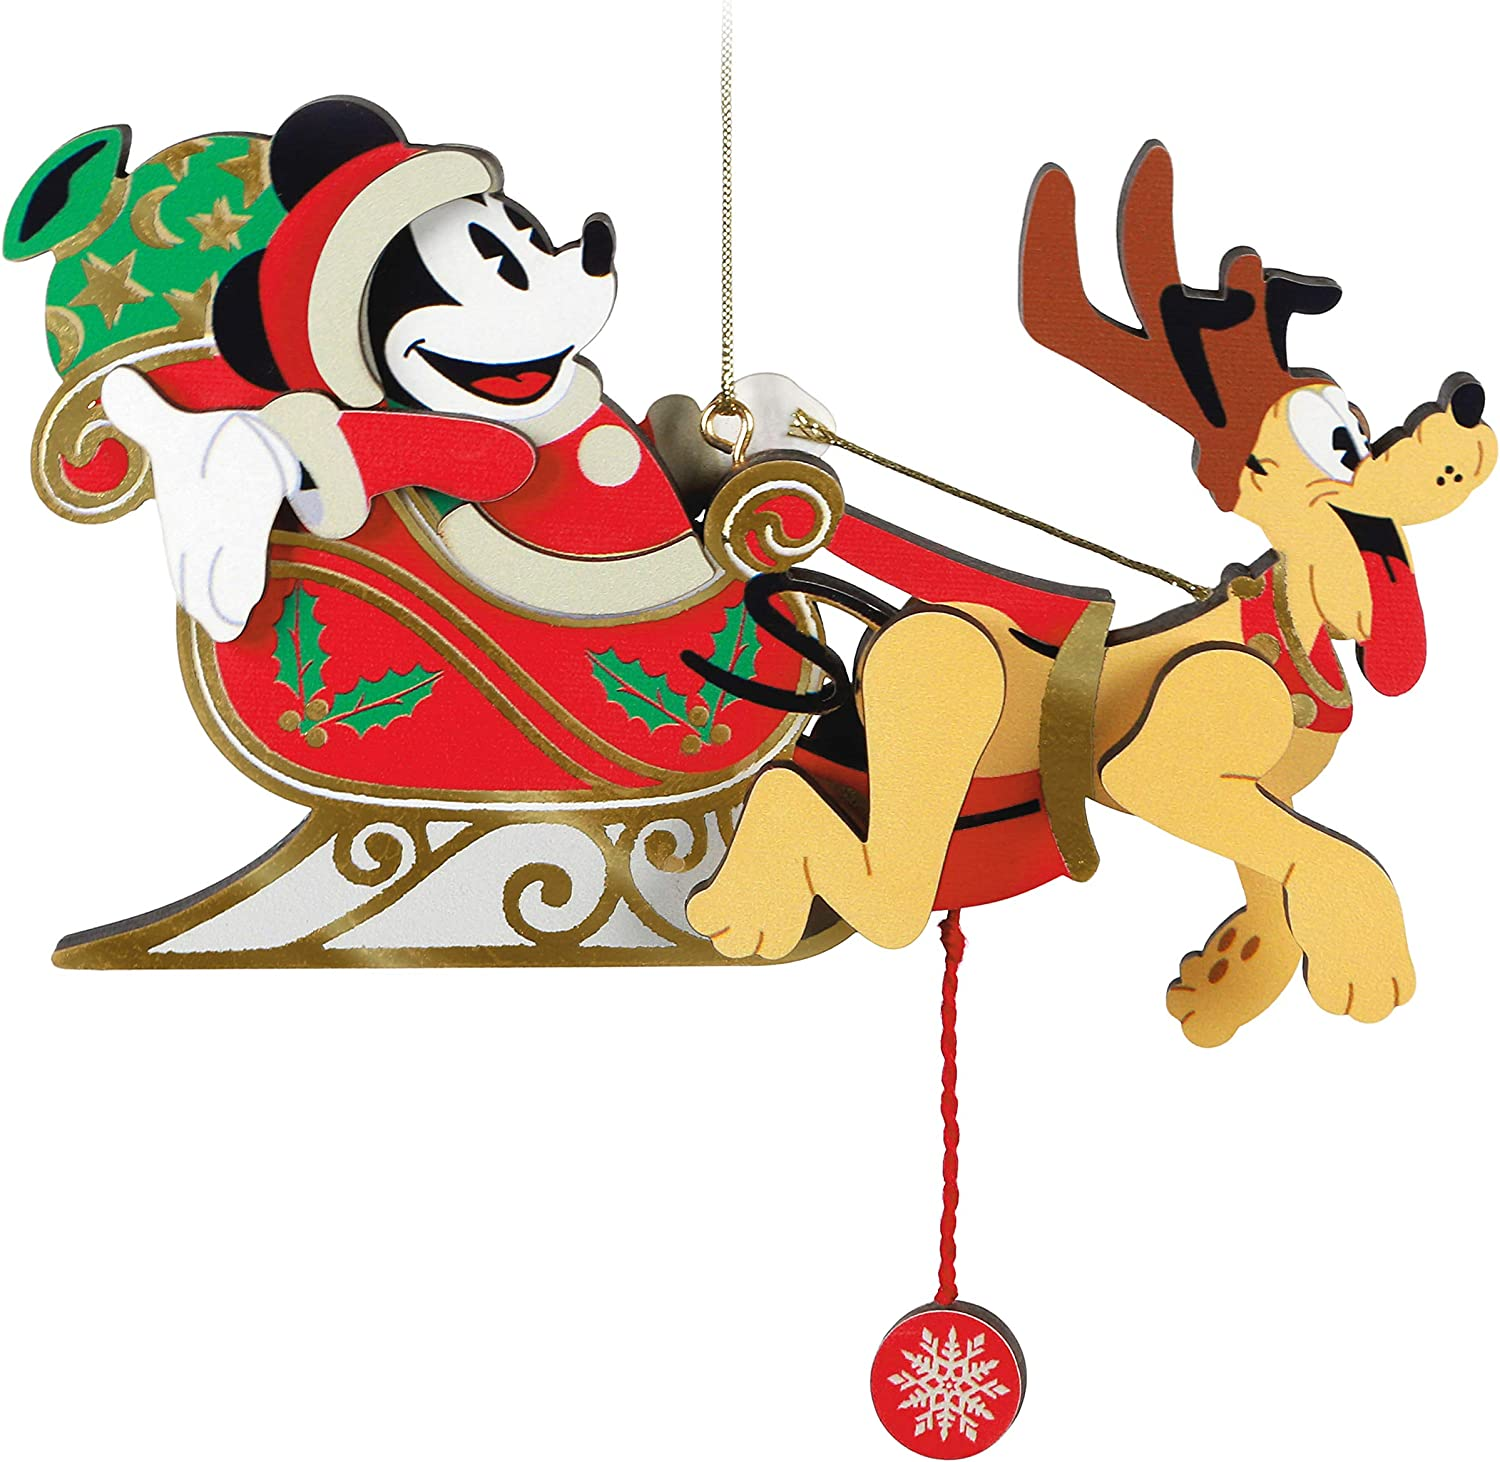 Hallmark Keepsake Christmas Ornament 2020, Disney Mickey Mouse and Pluto Oh, What Fun! Santa's Sleigh Pull-String